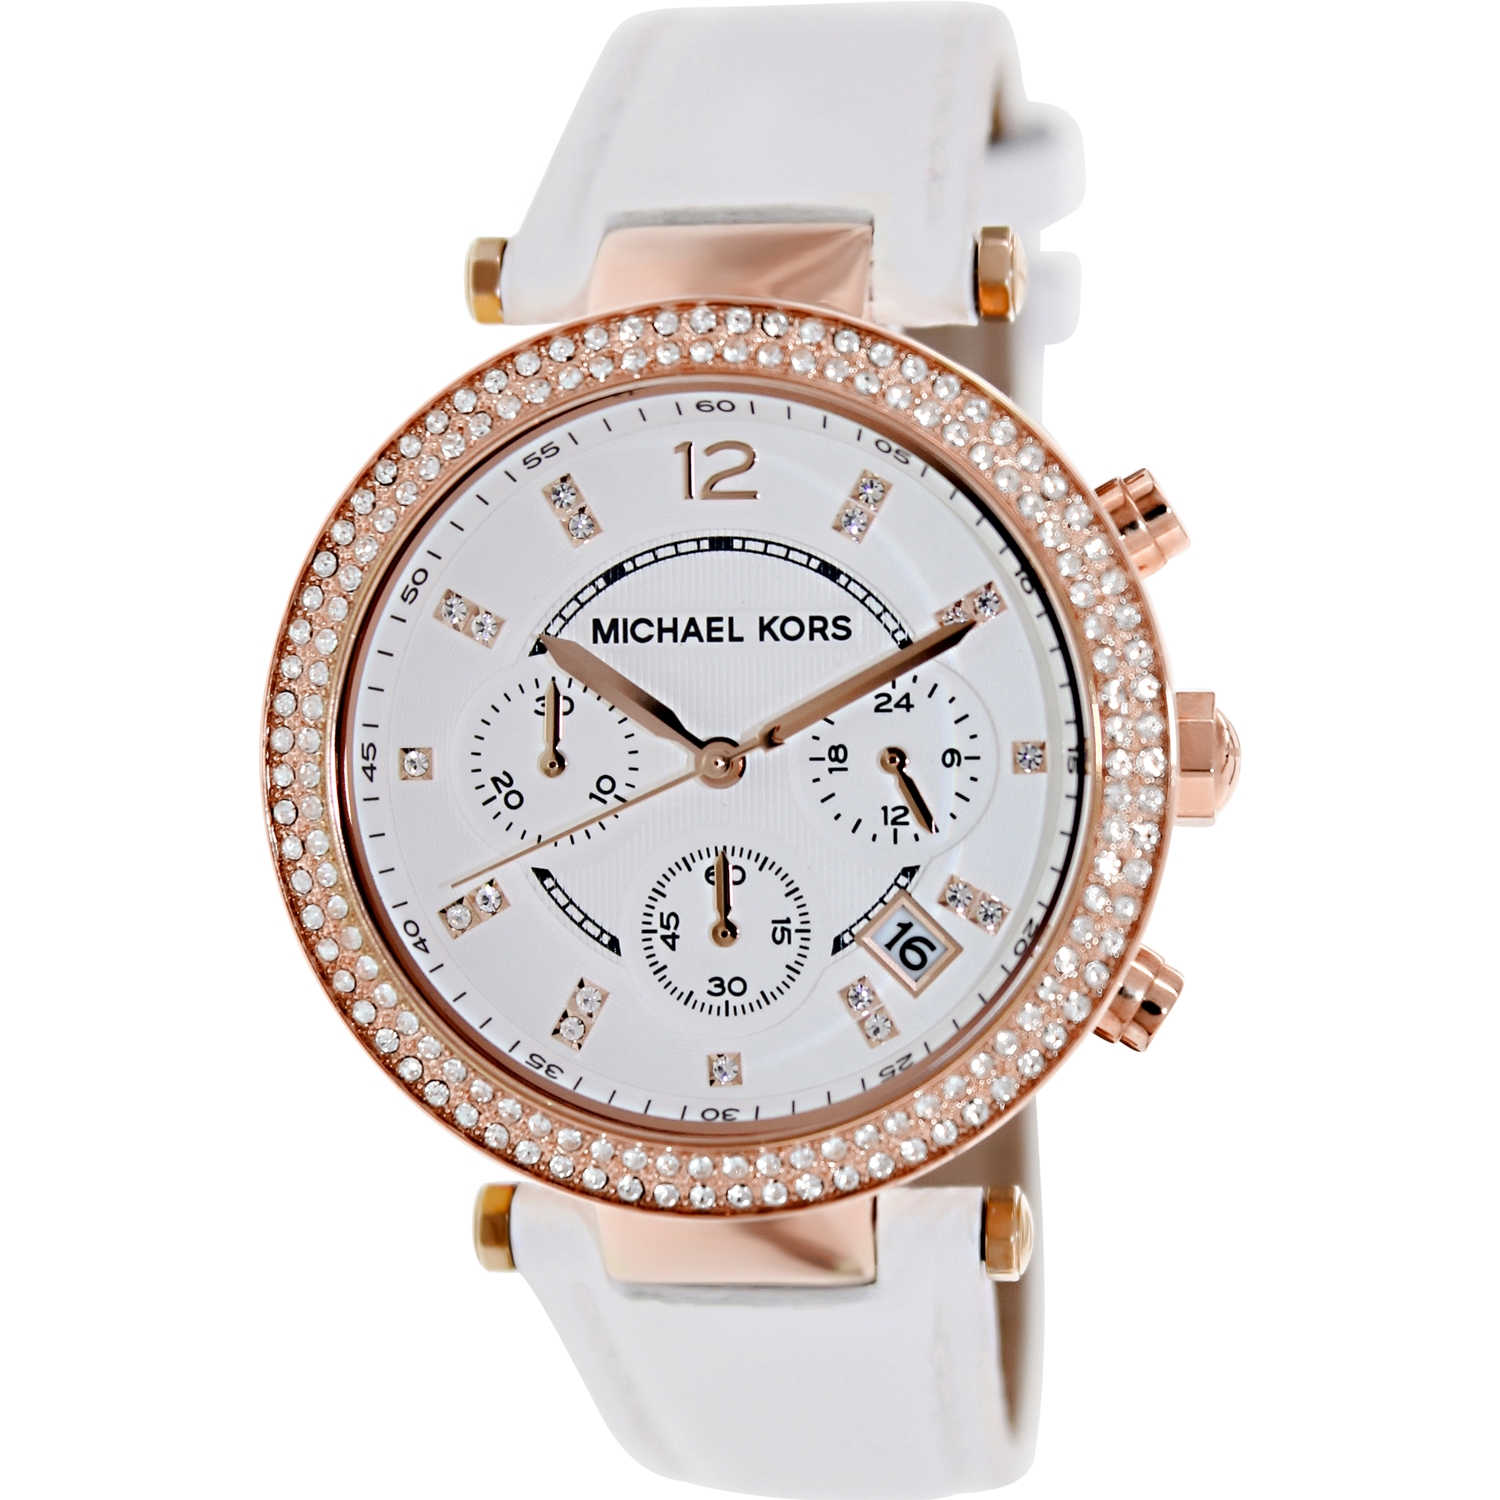 Michael Kors Women's Parker MK2281 White Leather Quartz Fashion Watch